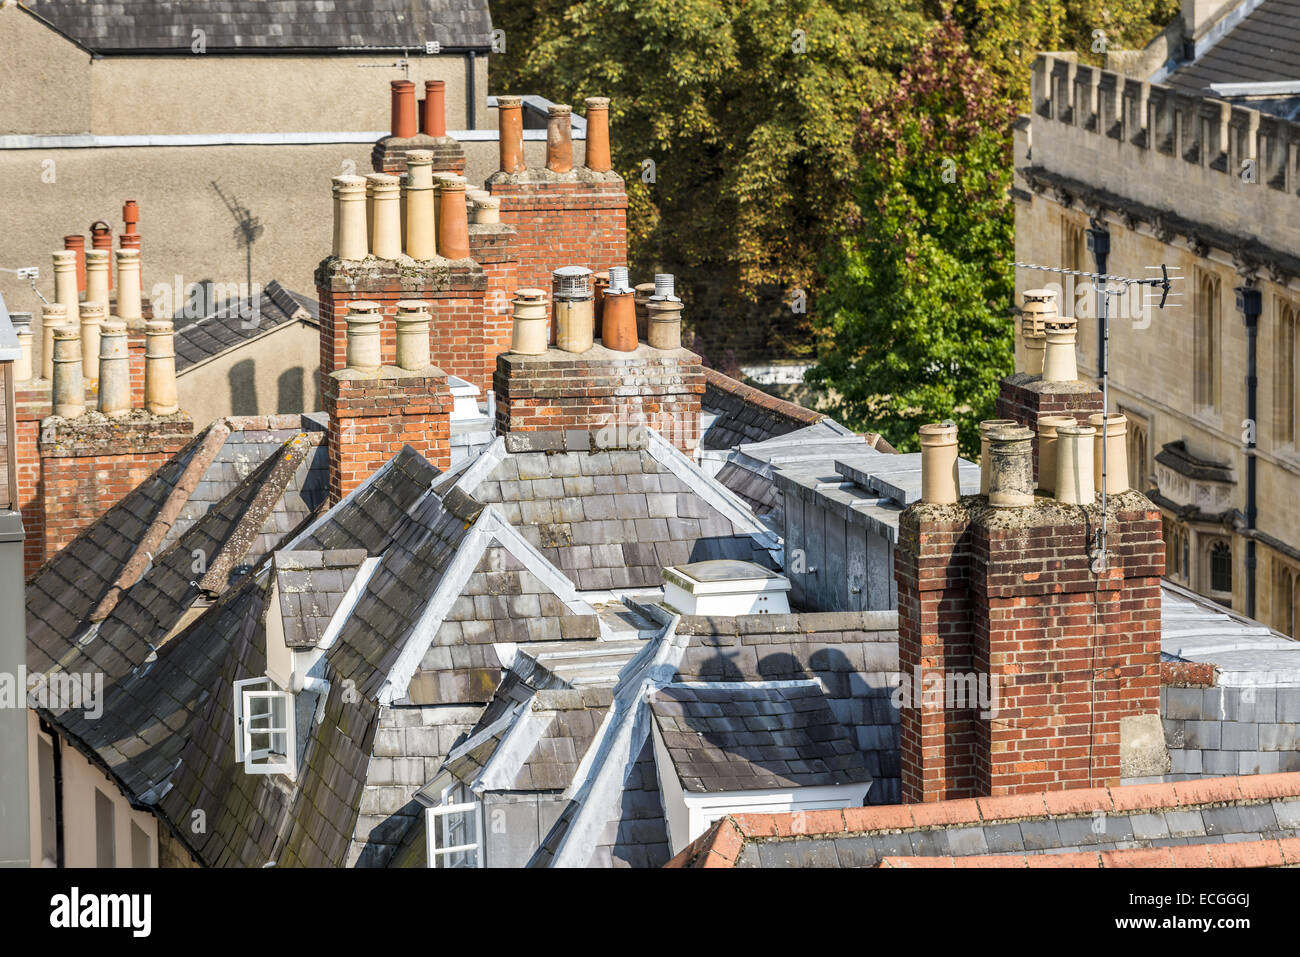 The roof tops of Oxford including attics, slate roofs, brick chimneys and chimney pots - Stock Image